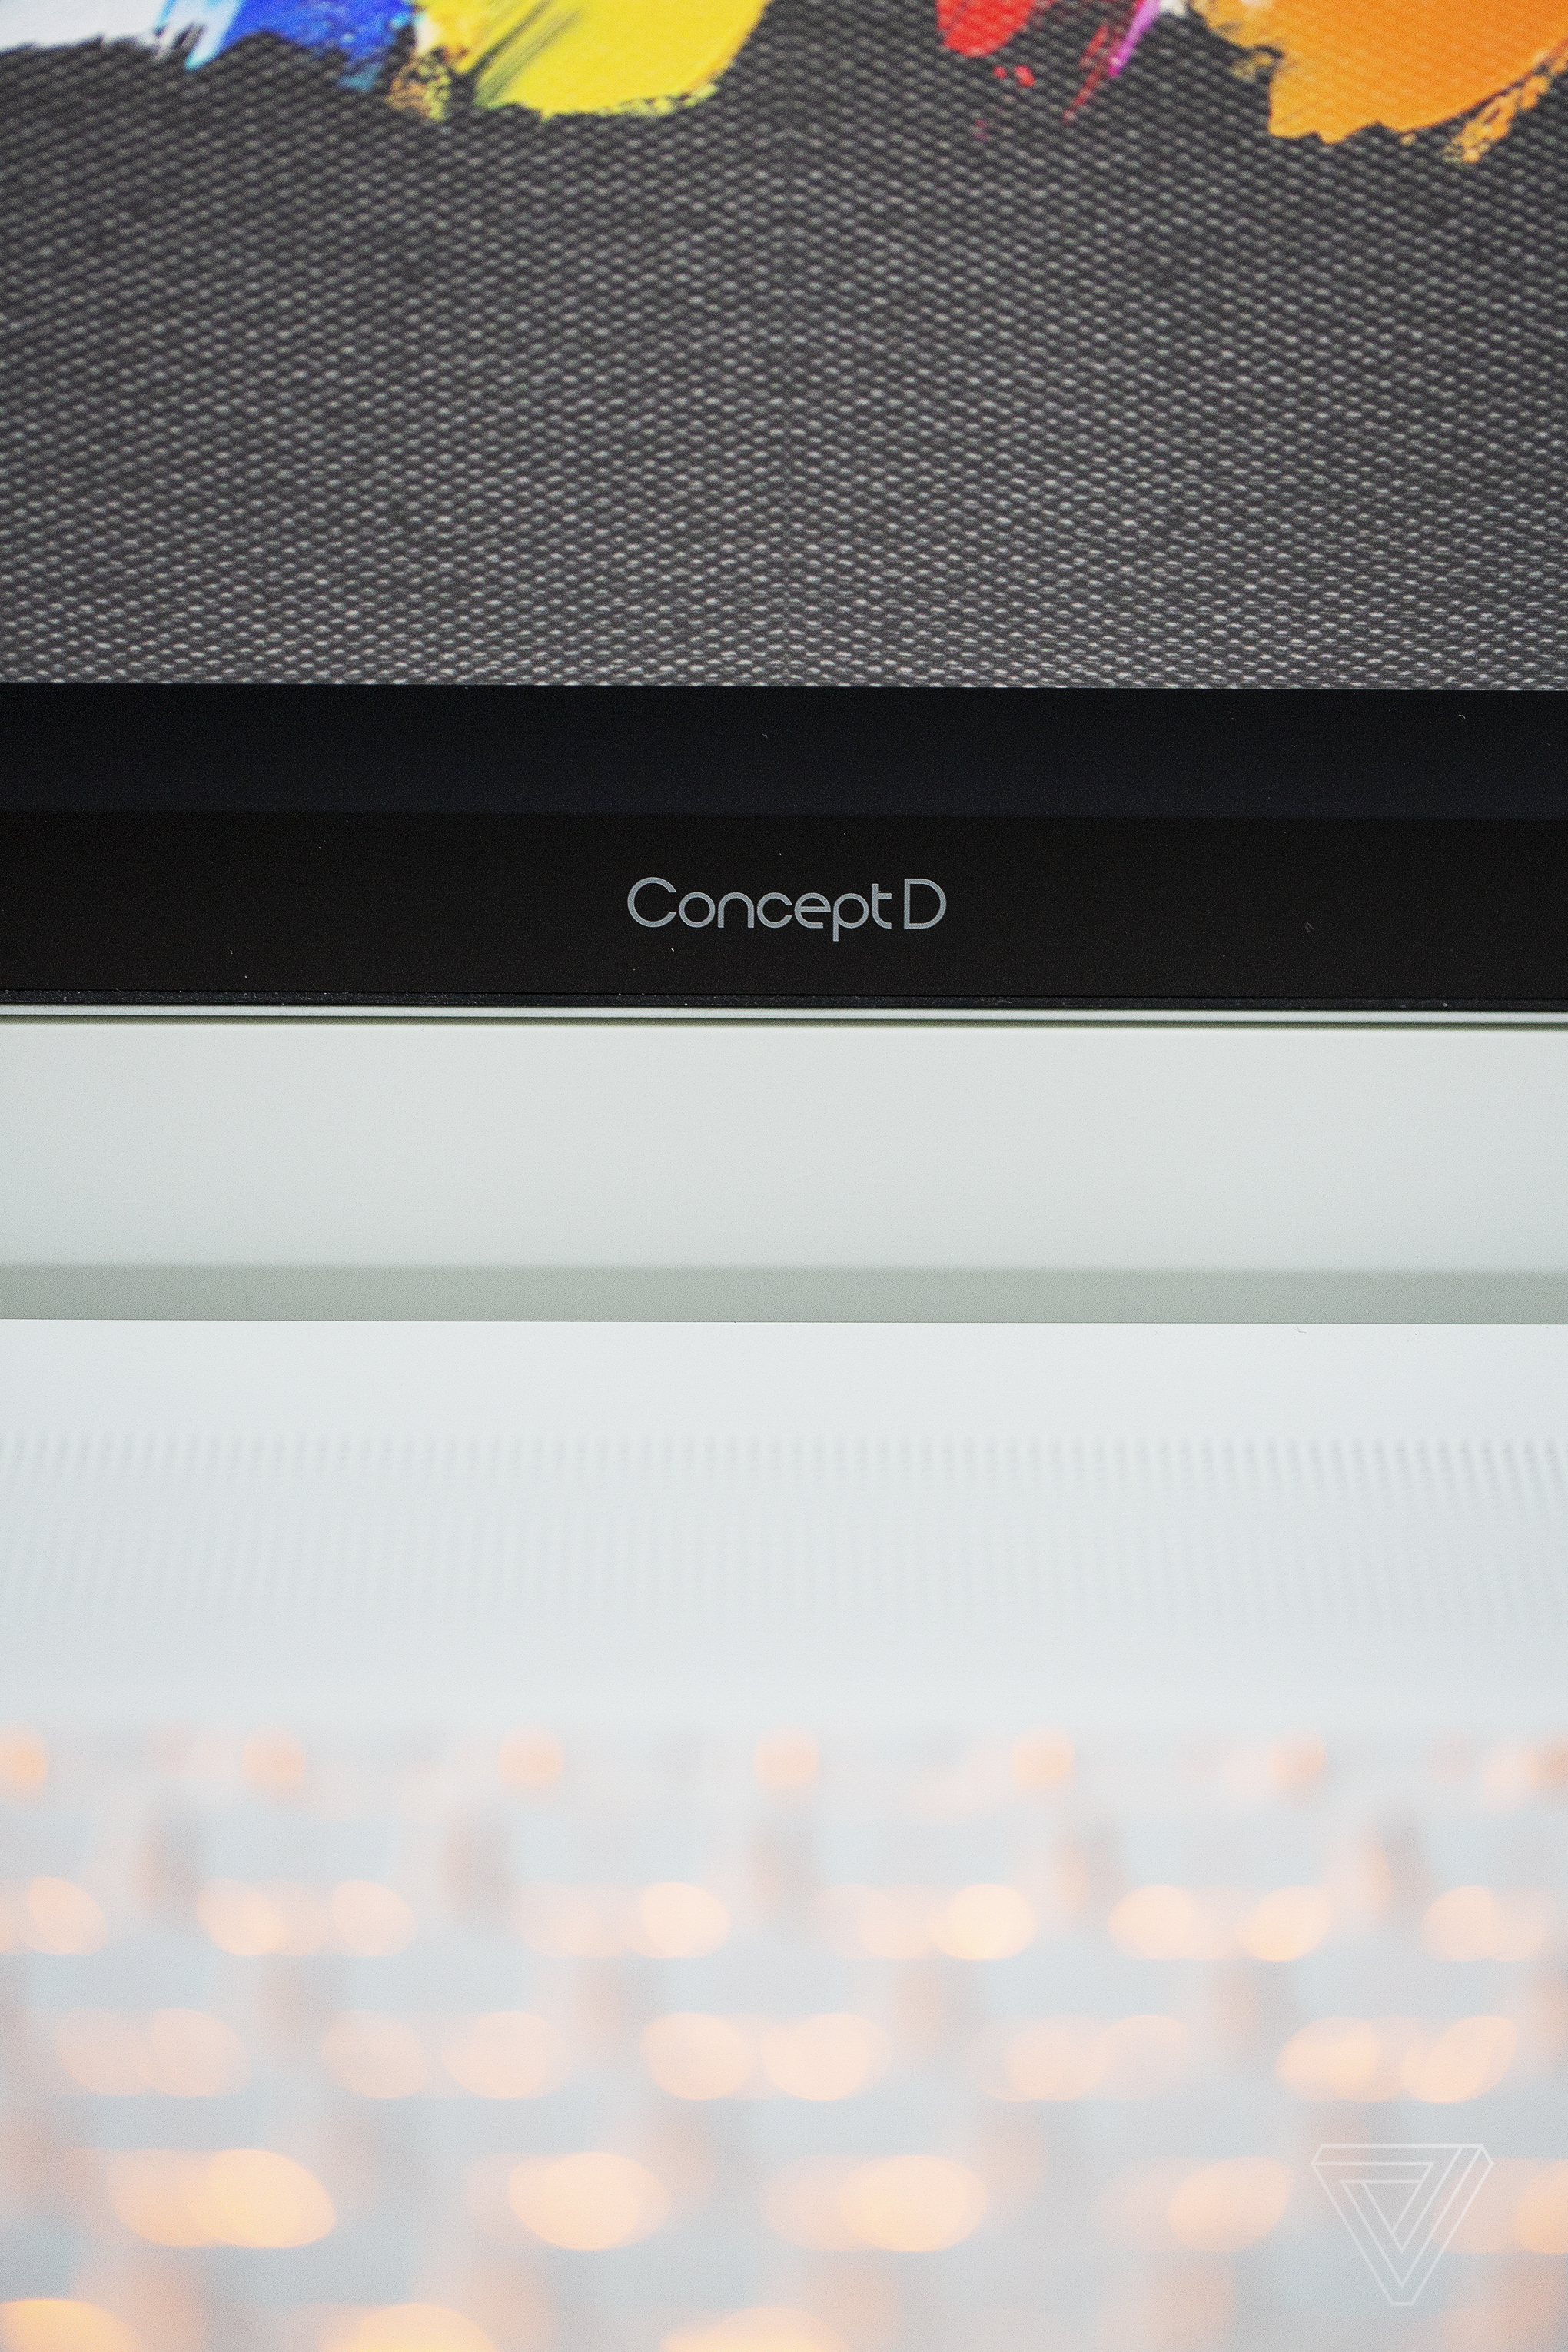 Acer ConceptD 7 Ezel review: the dream computer I'll never own